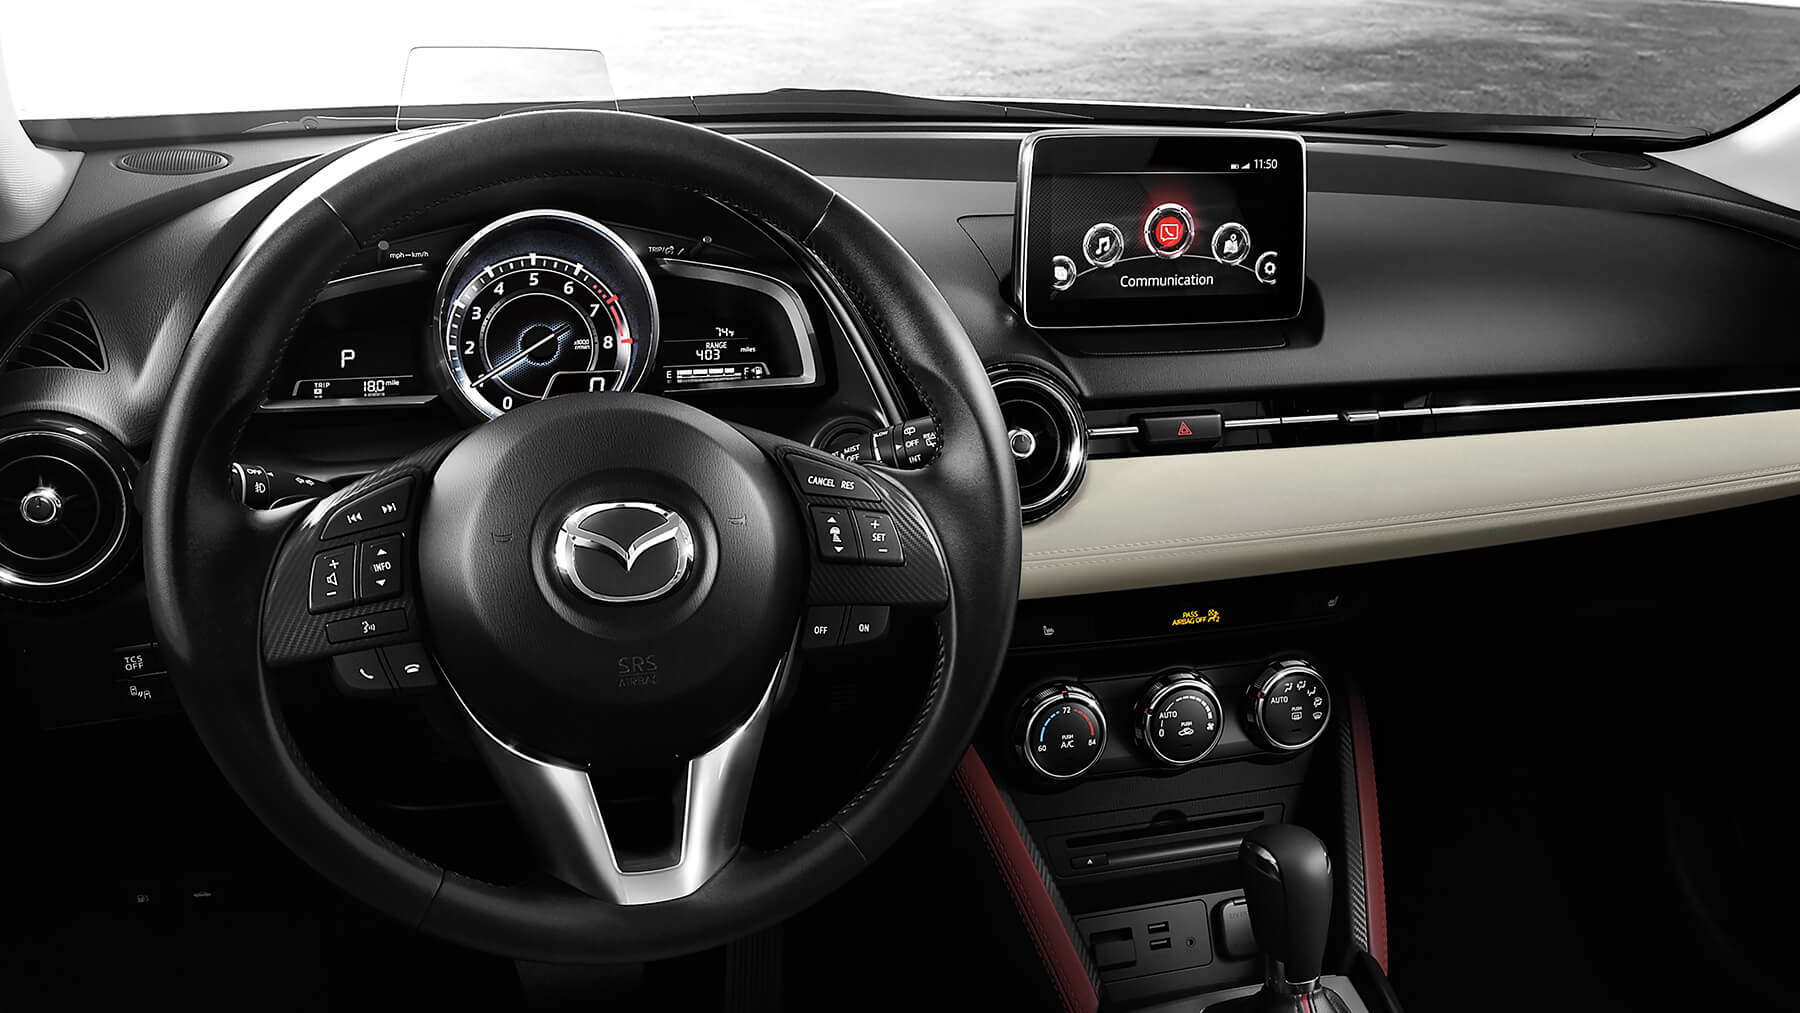 Mazda CX-3 Interior with Optional Cabin Technology